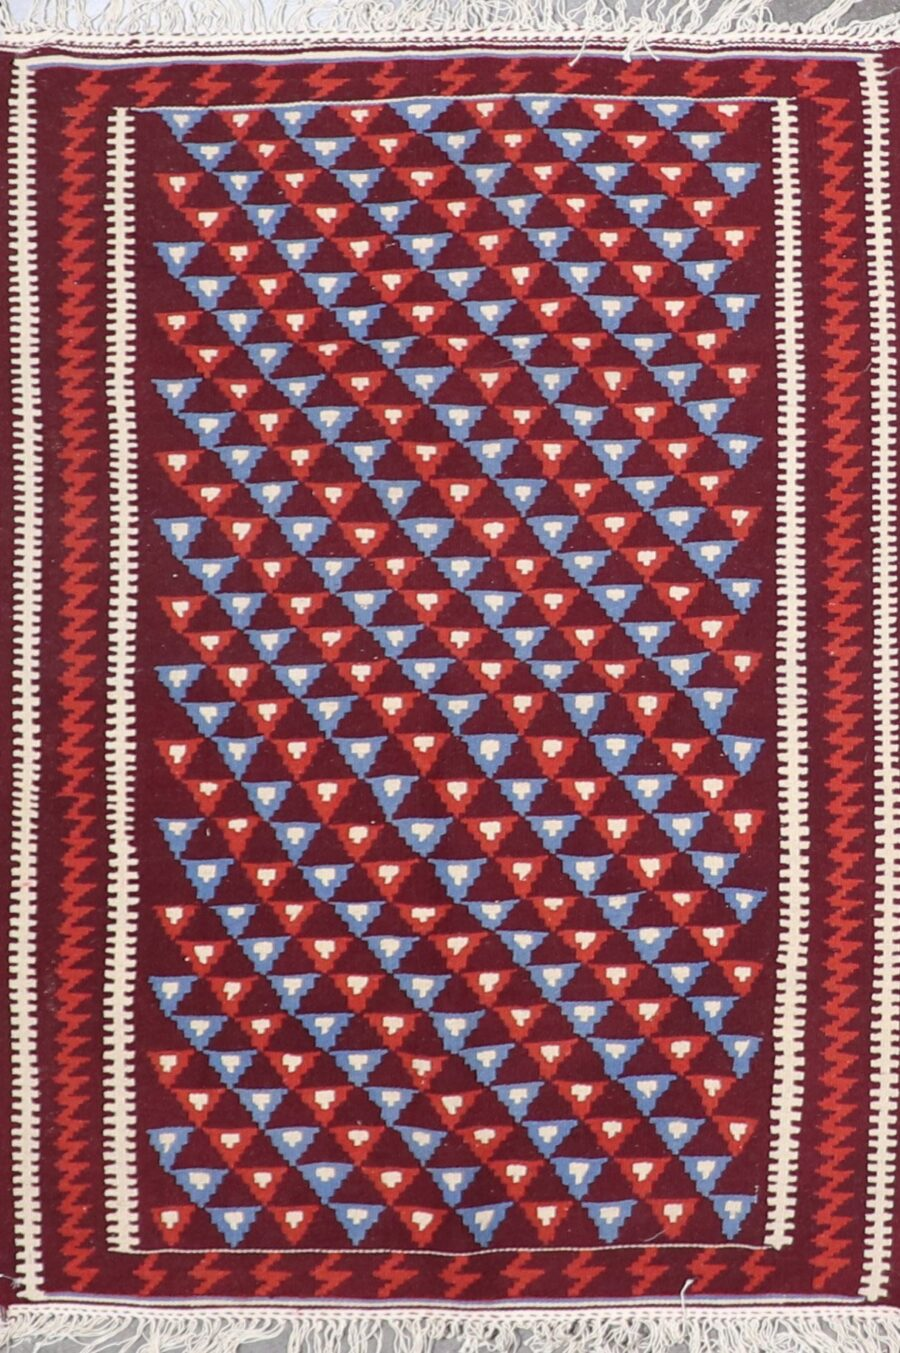 """3'5""""x4'8"""" Decorative Burgundy Wool Hand-Knotted Rug - Direct Rug Import   Rugs in Chicago, Indiana,South Bend,Granger"""